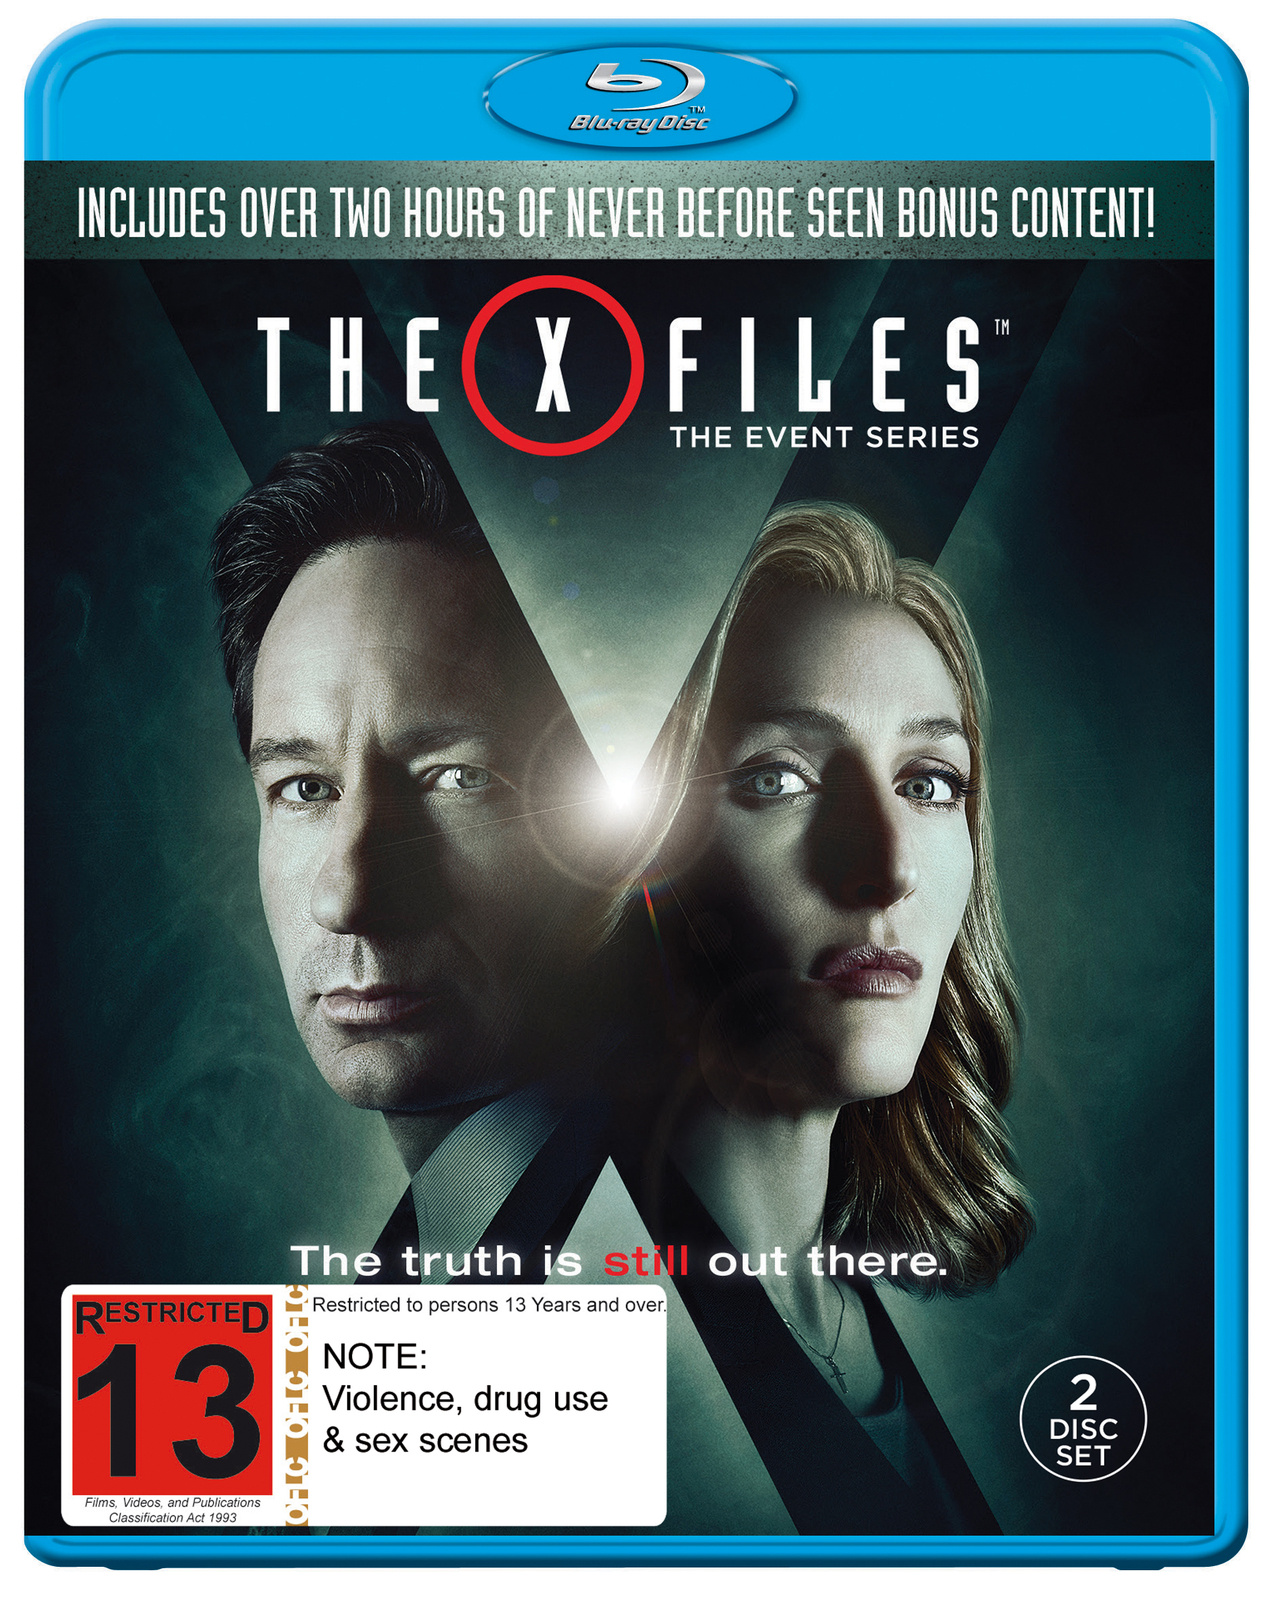 The X-Files Event Series 2016 on Blu-ray image